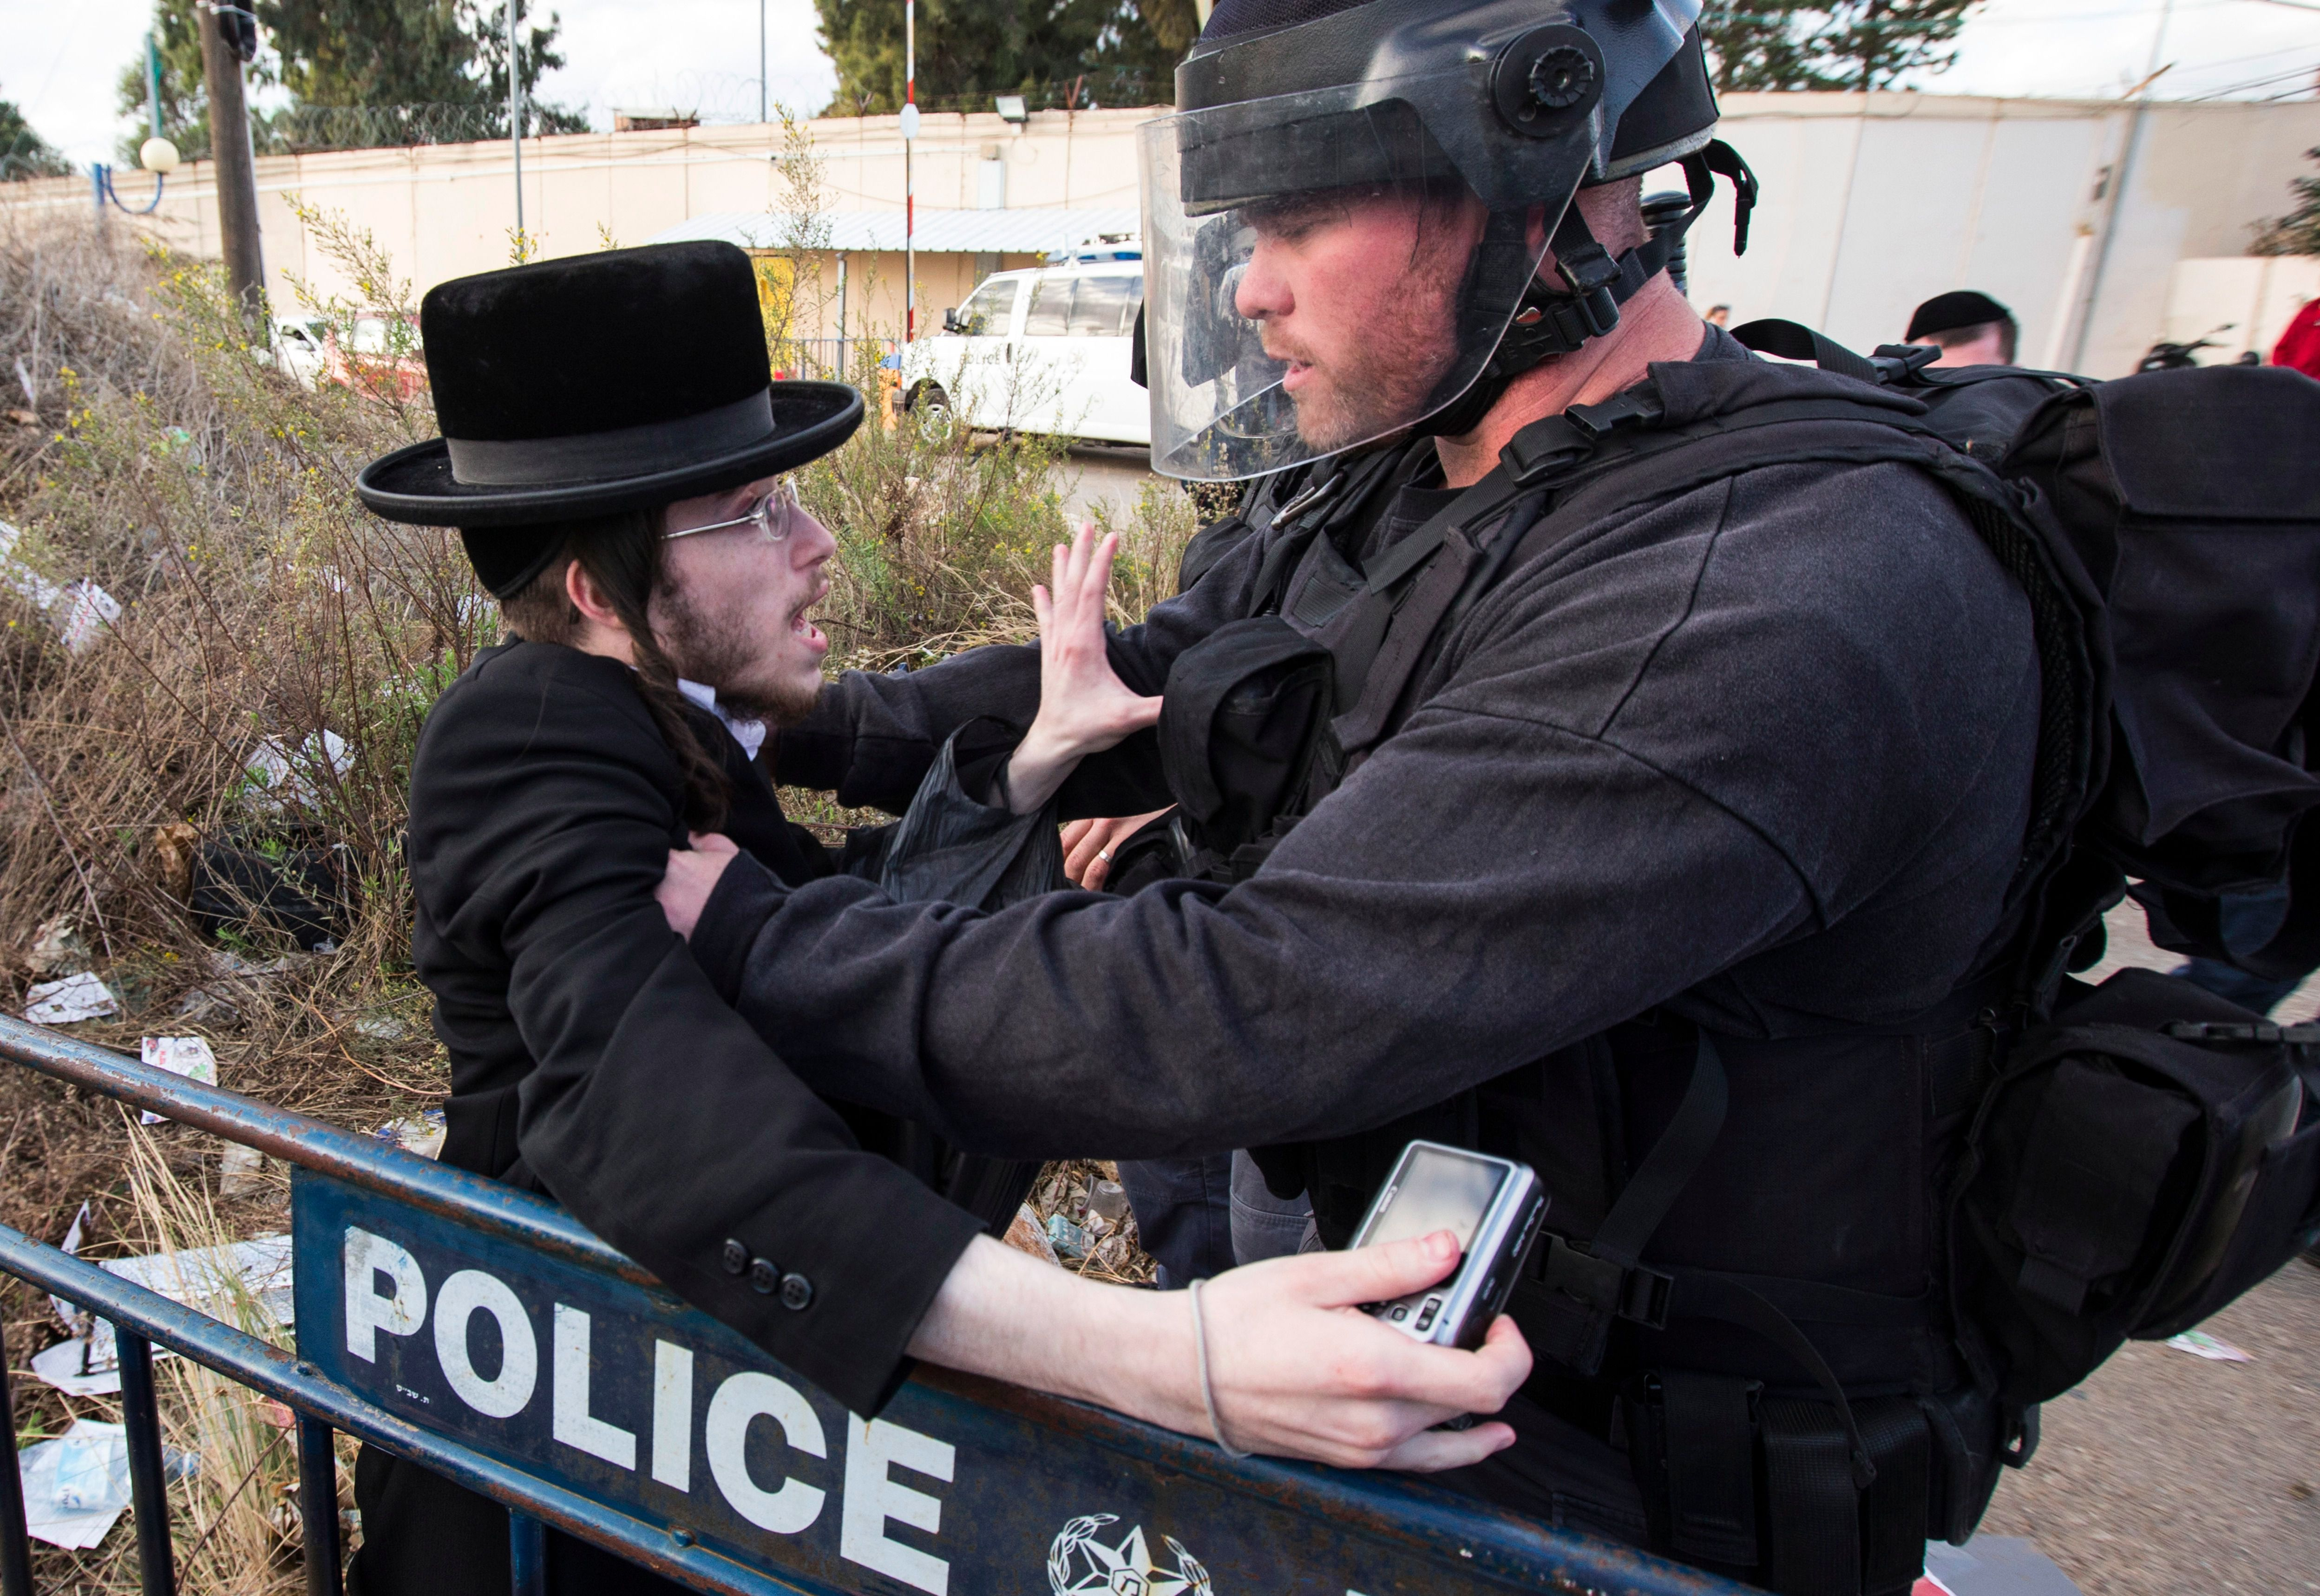 A confrontation between an ultra-Orthodox protester and an Israeli policeman during a 2013 protest over the arrest of a man who refused military service.